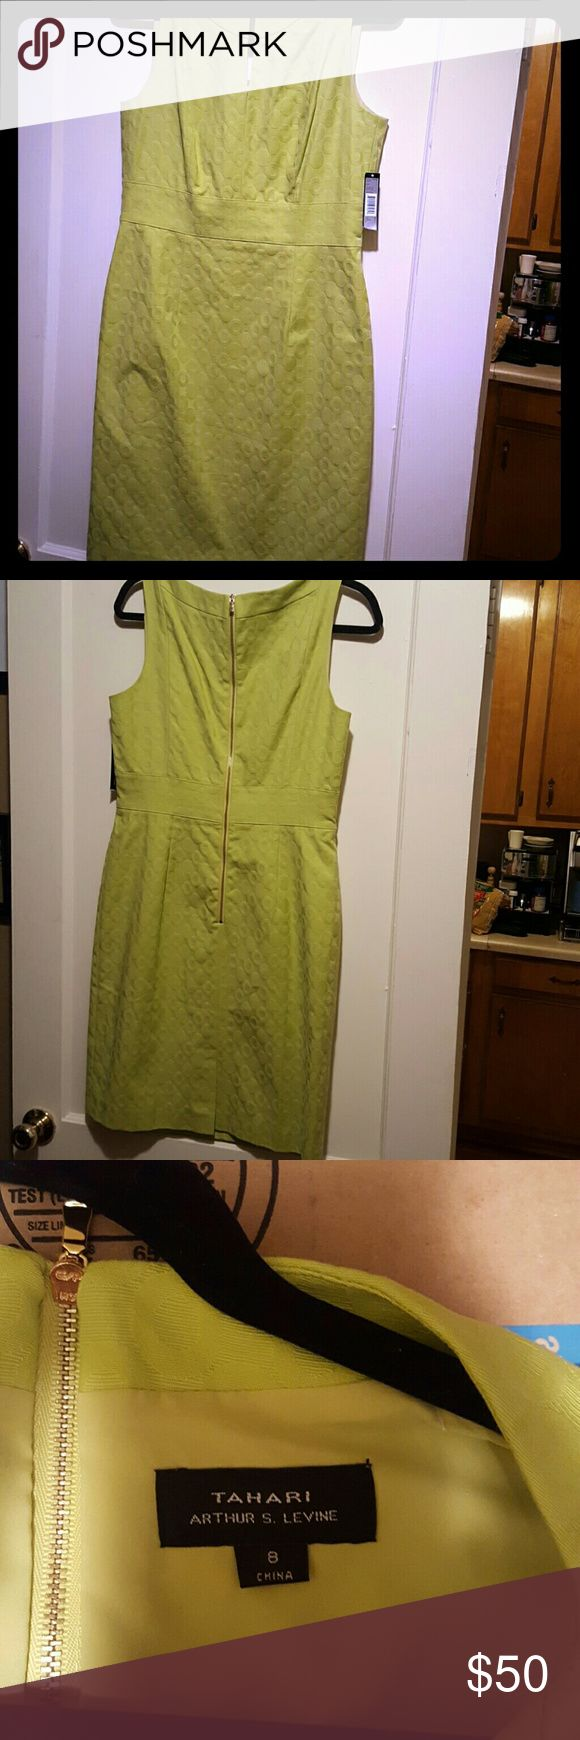 Tahari lime green dress Beautiful lime green color with alternating round designs in fabric as texture. Gold buckle at neck. New with tags! No rips, tears or stains, smoke-free home. This is an absolutely gorgeous item and looks perfectly Polished! Tahari Dresses Midi